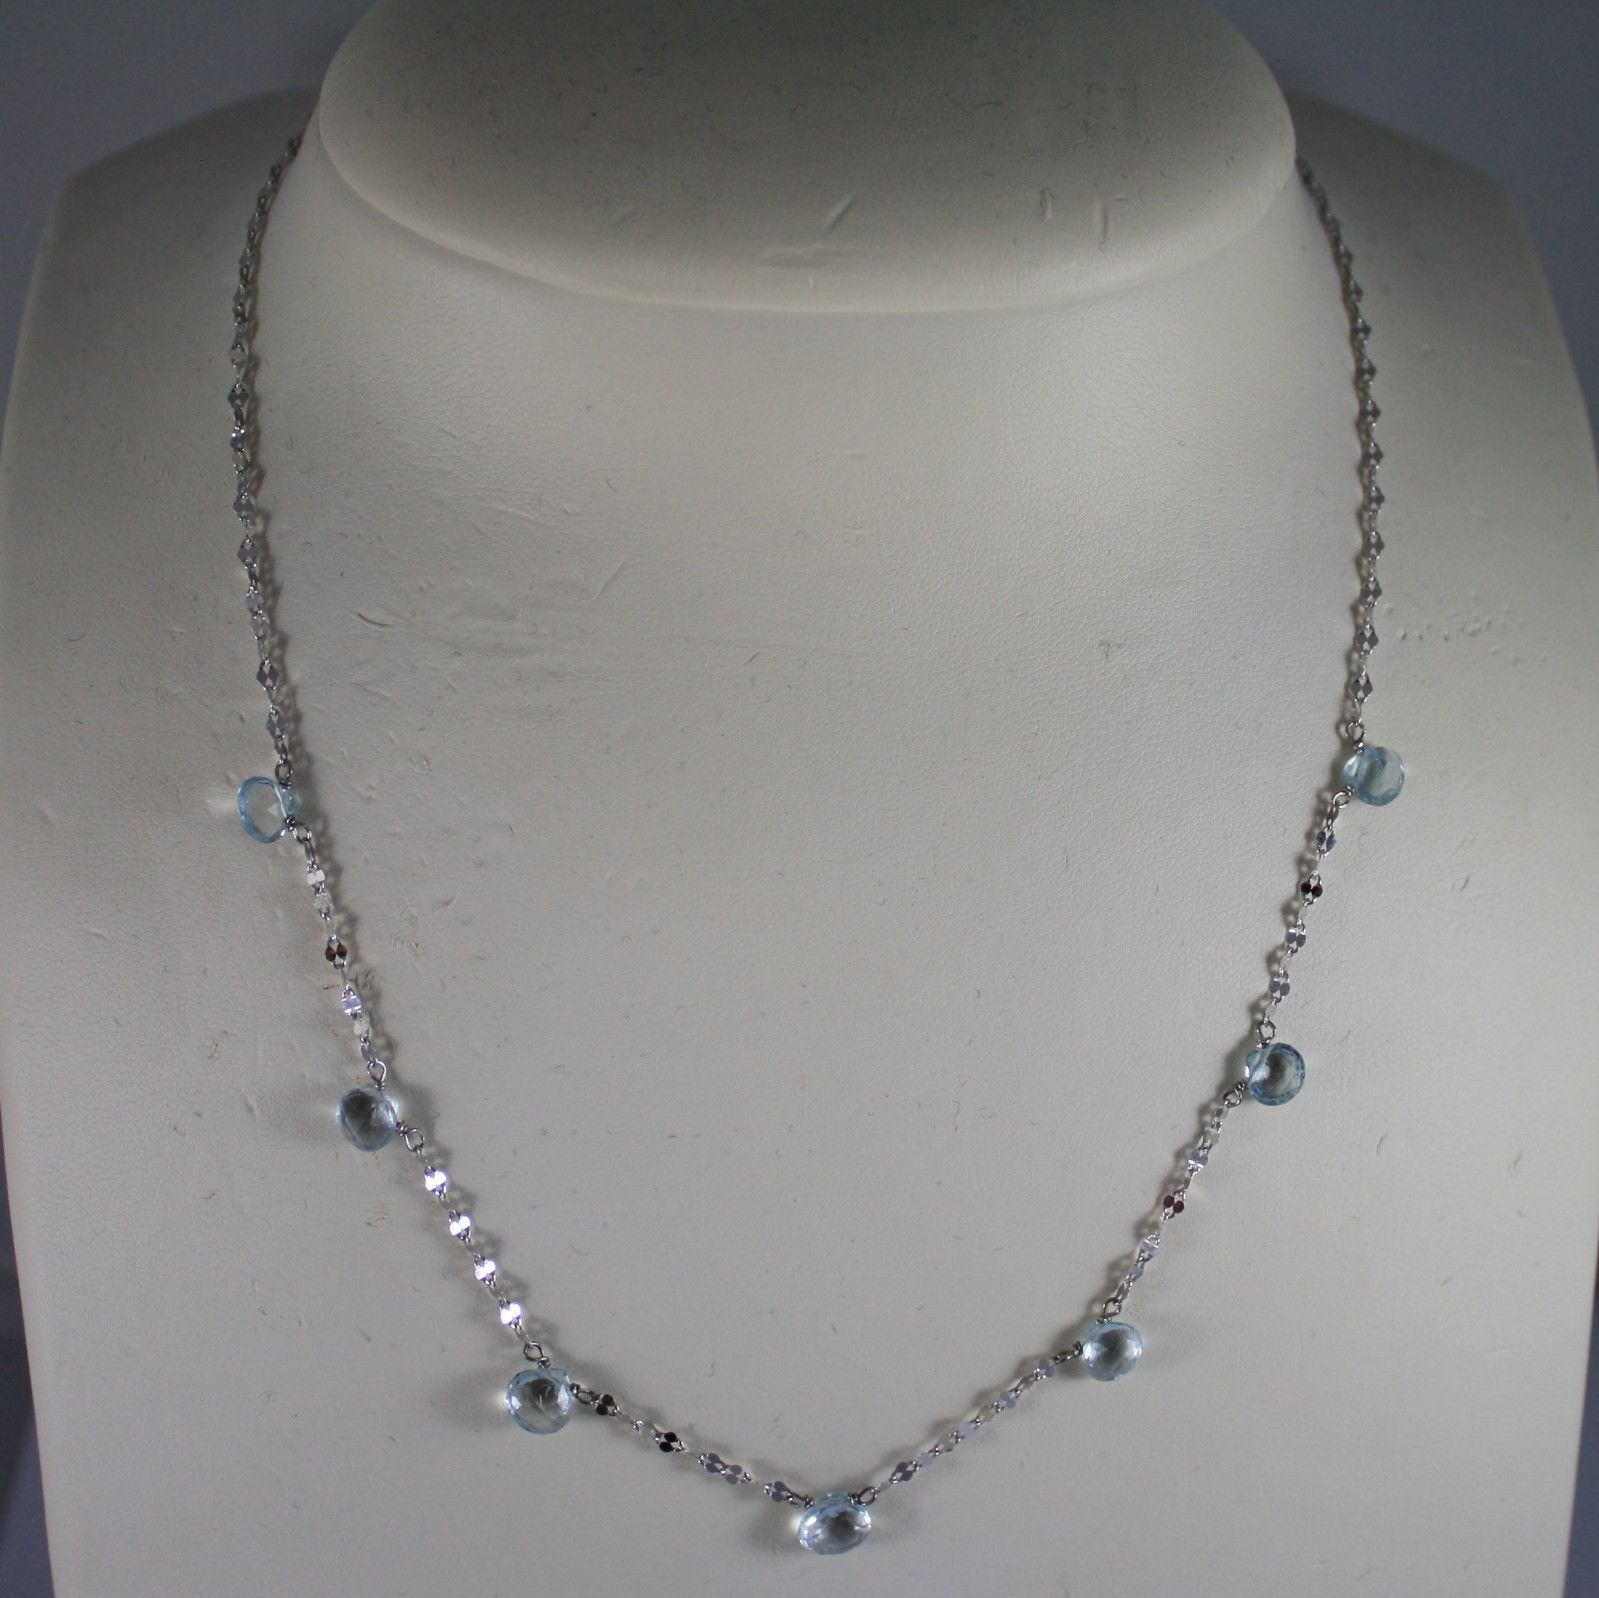 SOLID 18K WHITE GOLD NECKLACE WITH DROPS OF AQUAMARINE LENGTH 17,32 IN